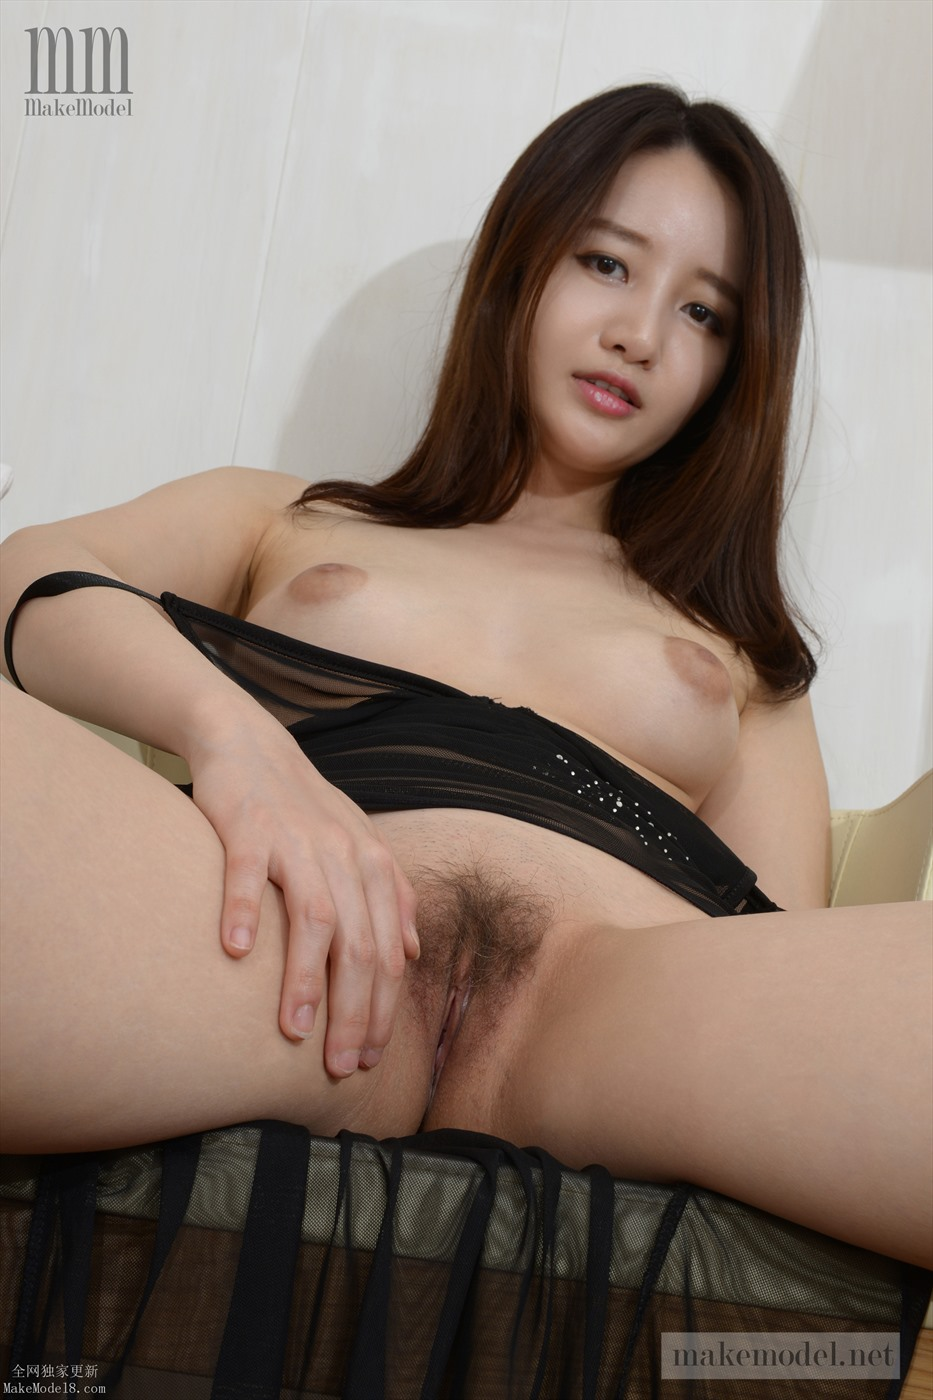 makemodel nude korean